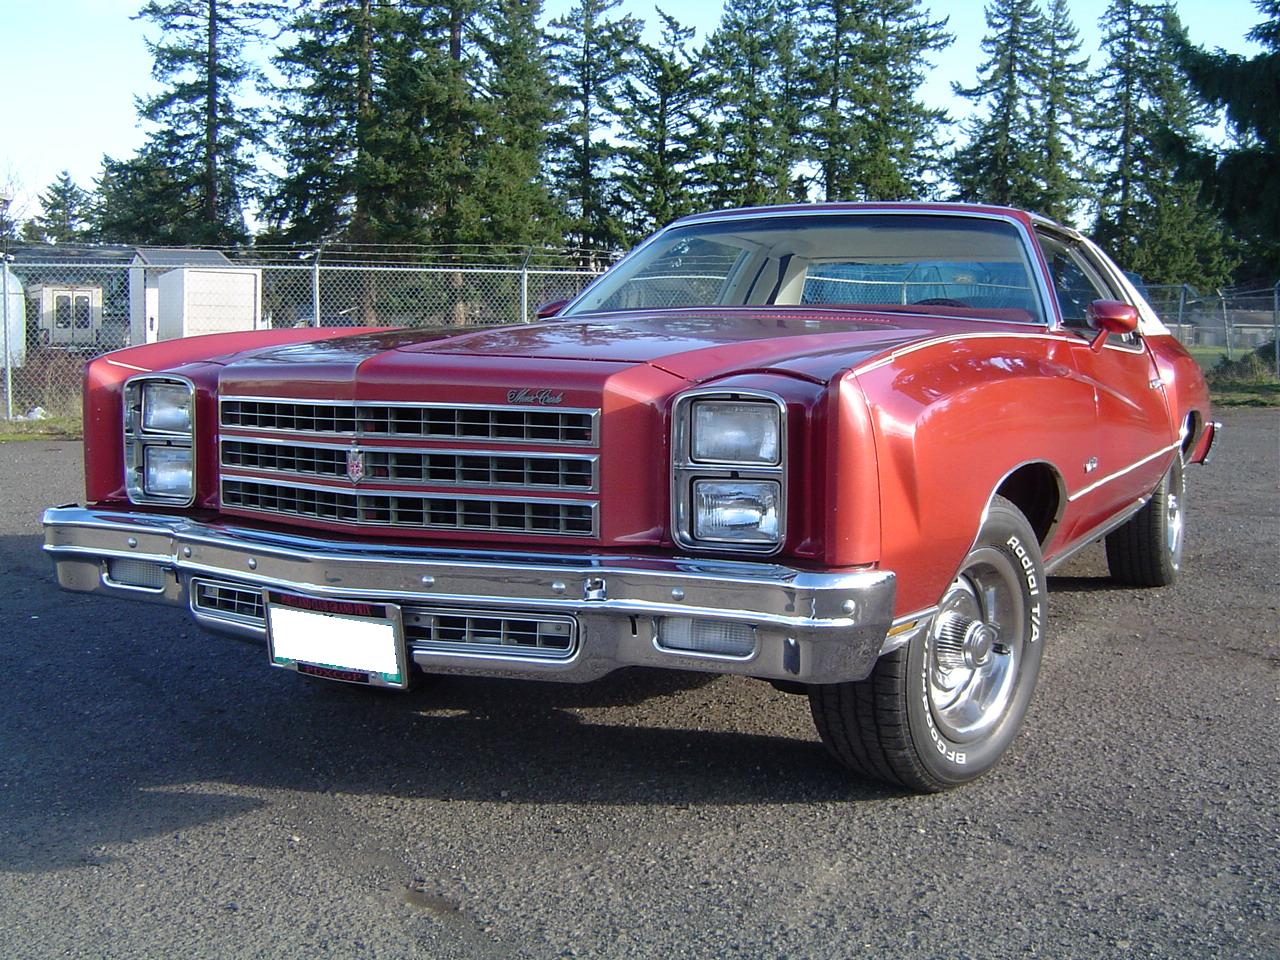 1976 Firethorn Metallic Chevrolet Monte Carlo Landau picture, mods, upgrades